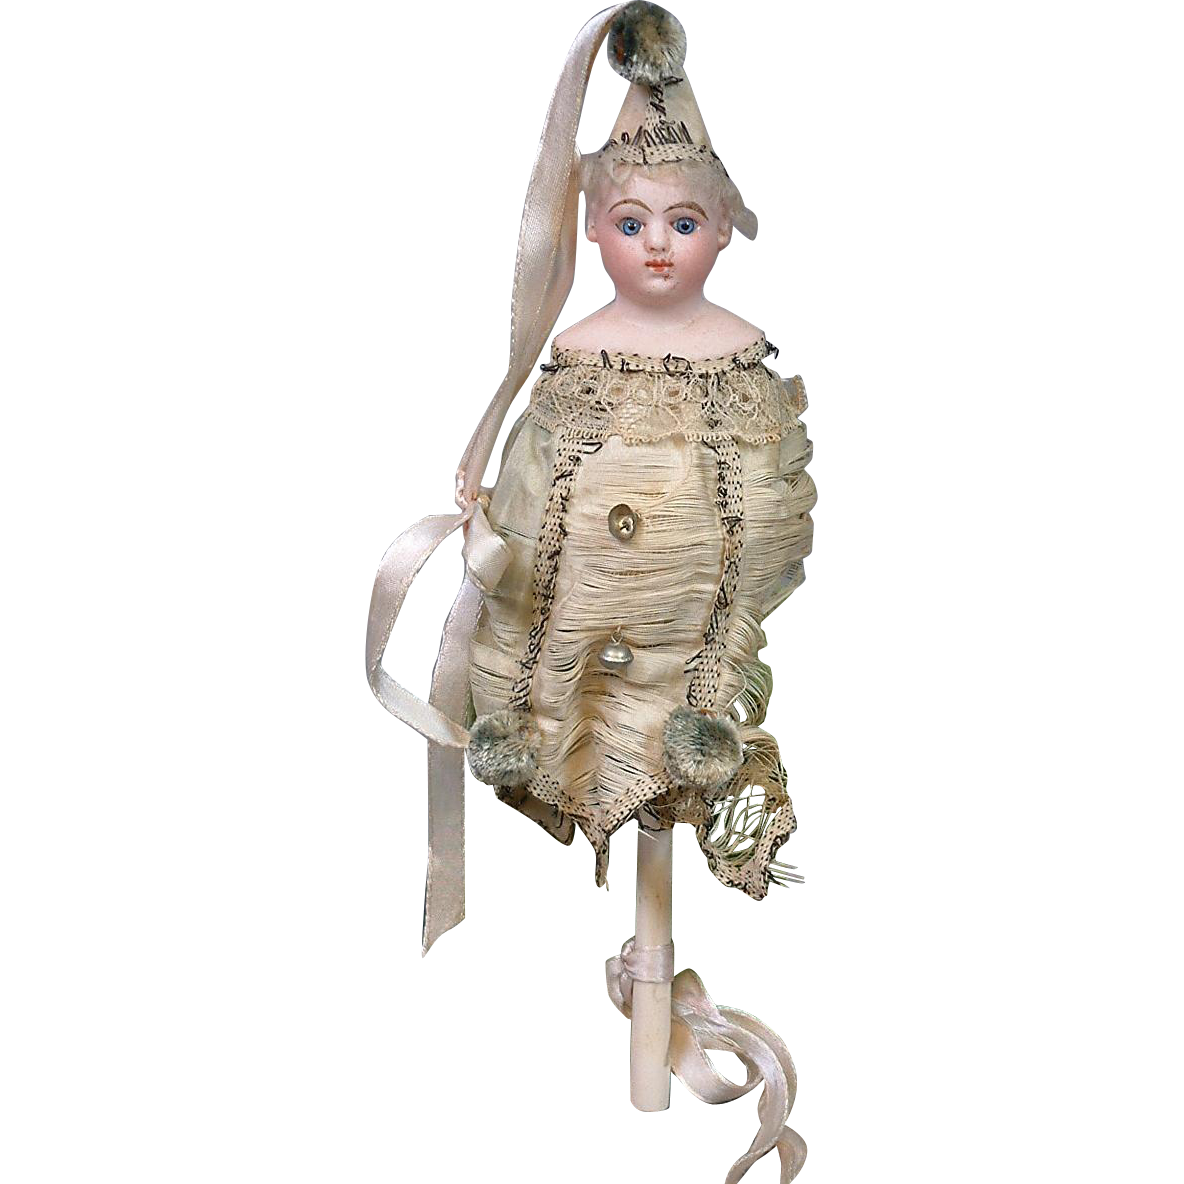 Darling Antique Marotte Bisque Girl in Jester Costume with Whistle Handle